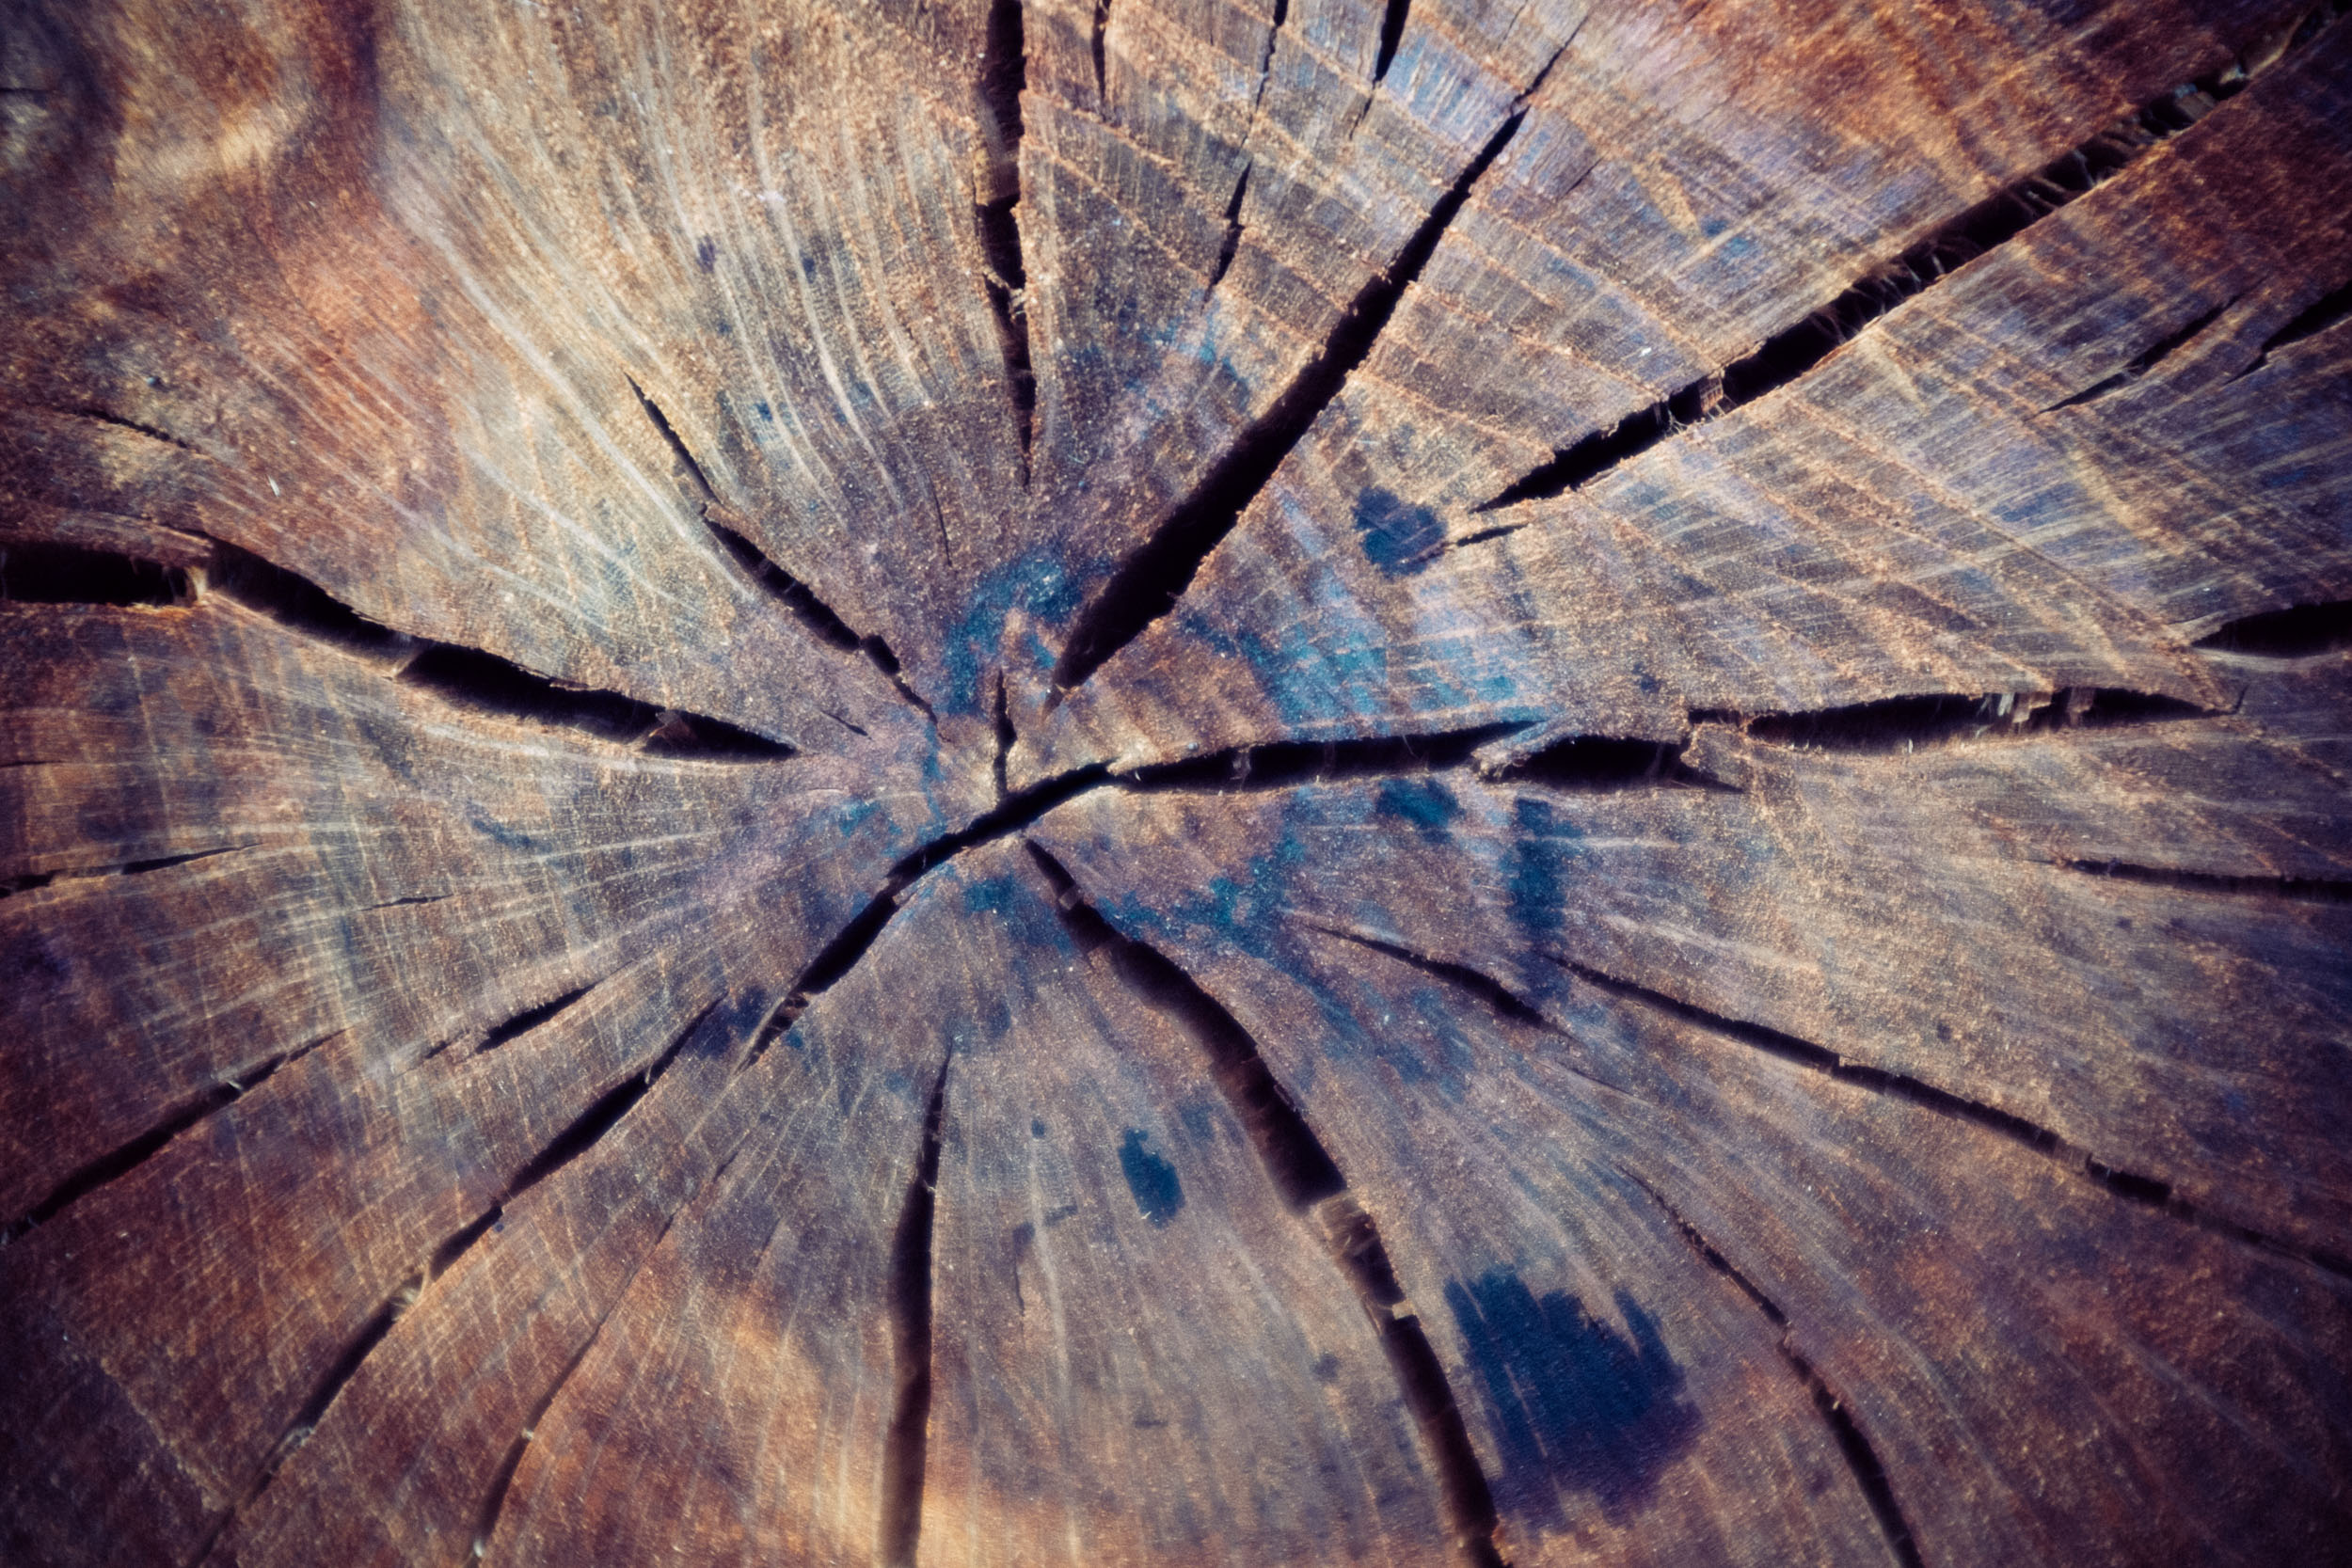 tree stump detail. copyright leonie wise